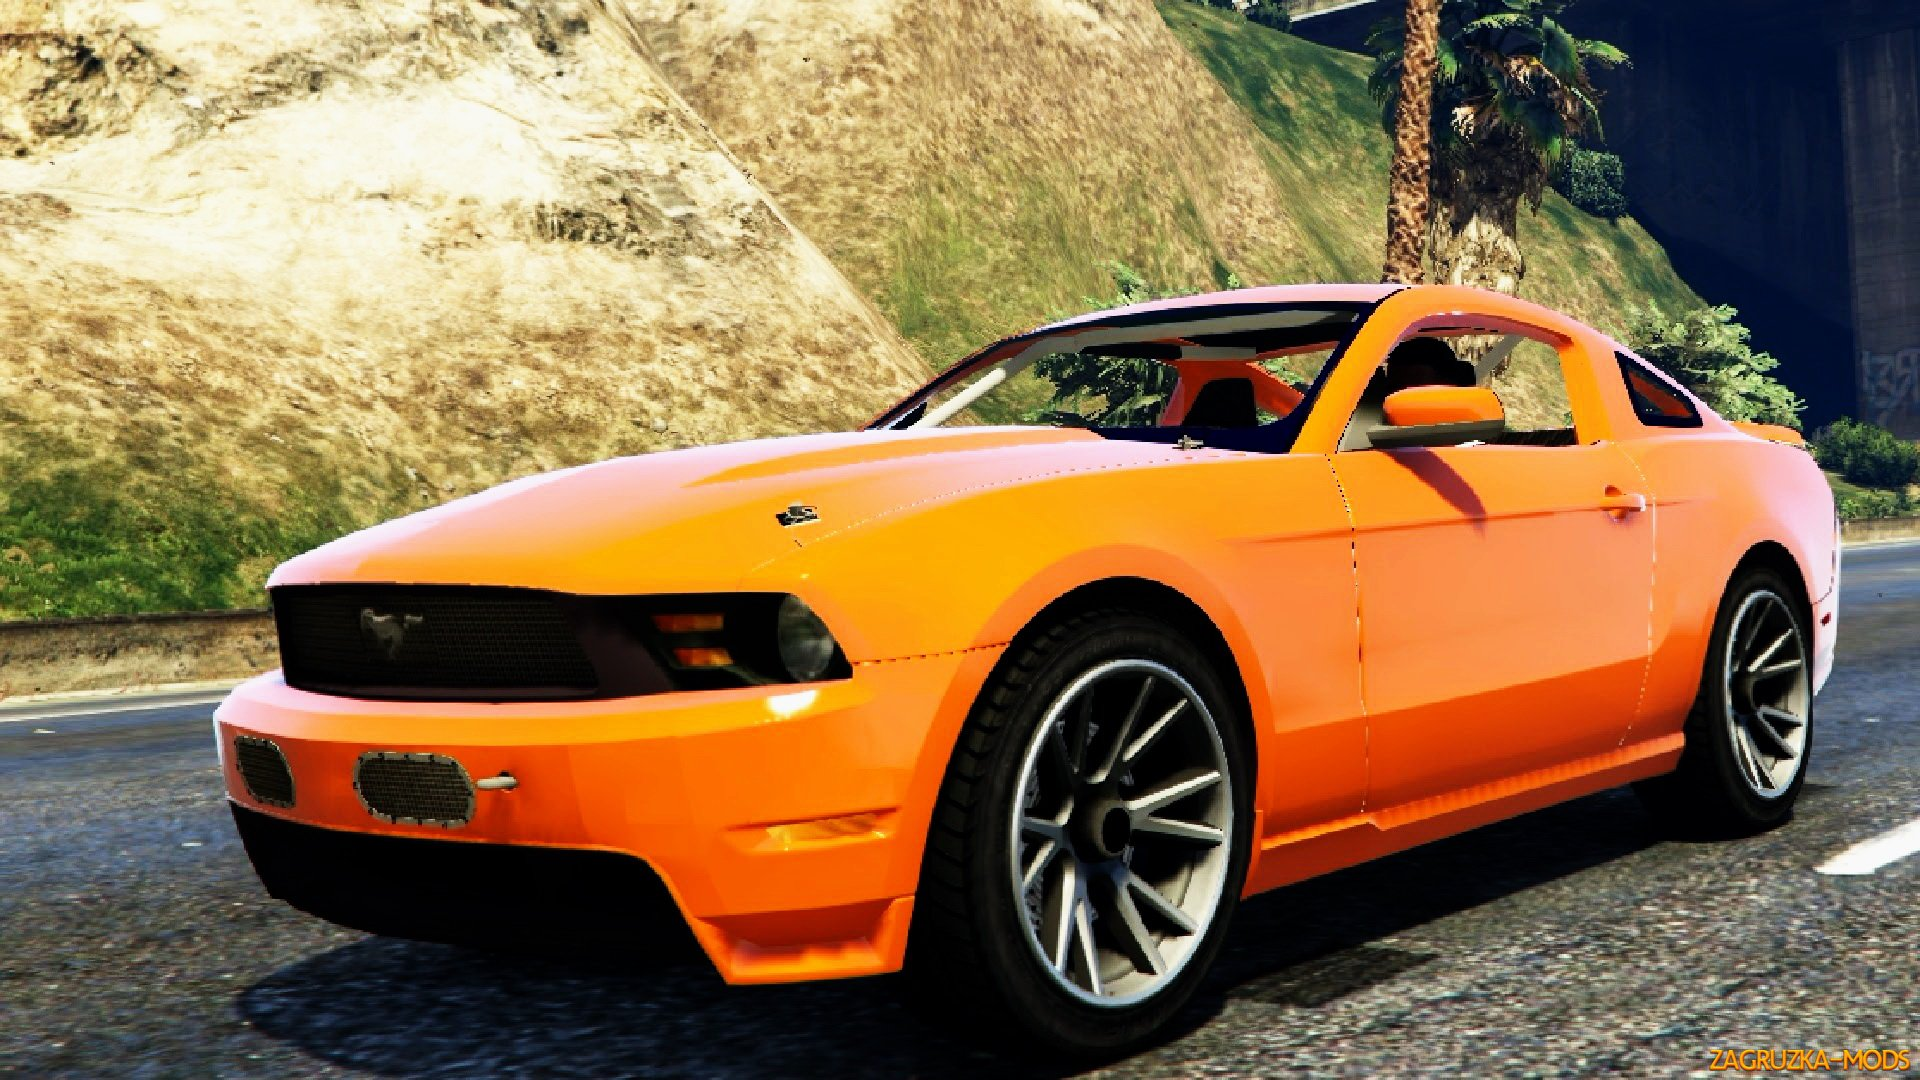 Mustang 302 BOSS 2012 v1.1 for GTA 5